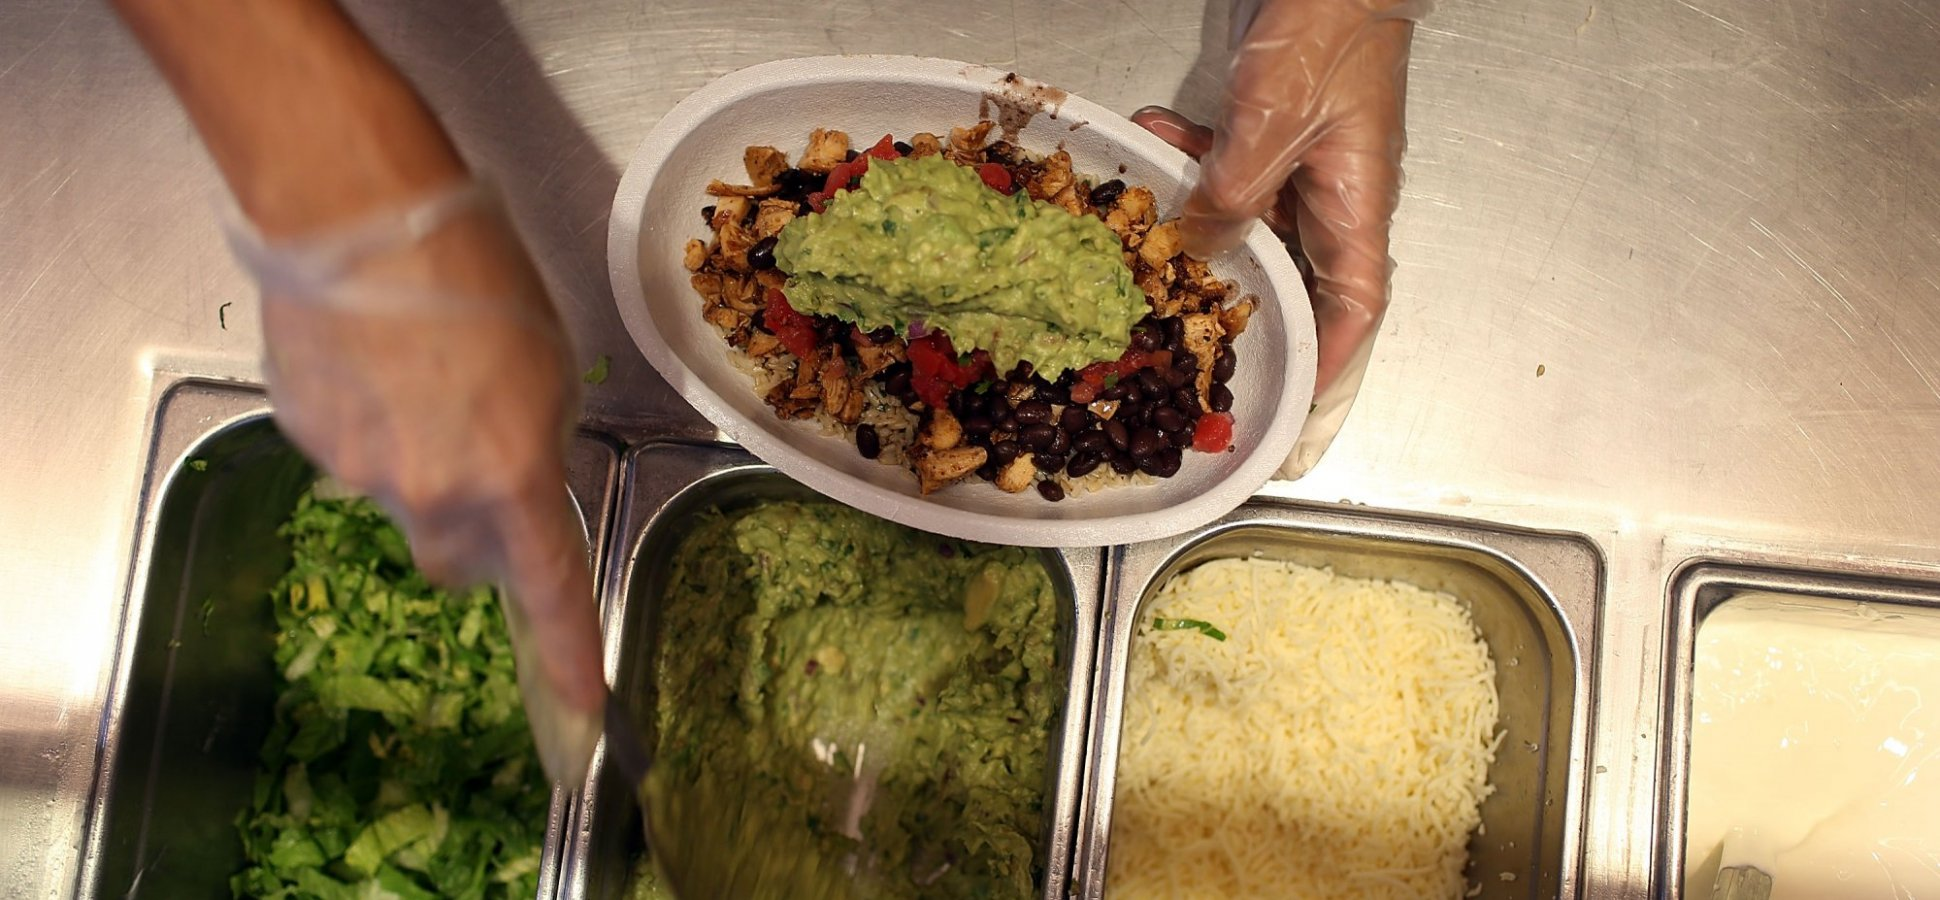 Chipotle Wants Sick Employees to Verify with a Nurse. This is a Very Pro-Employee Move. Here's Why